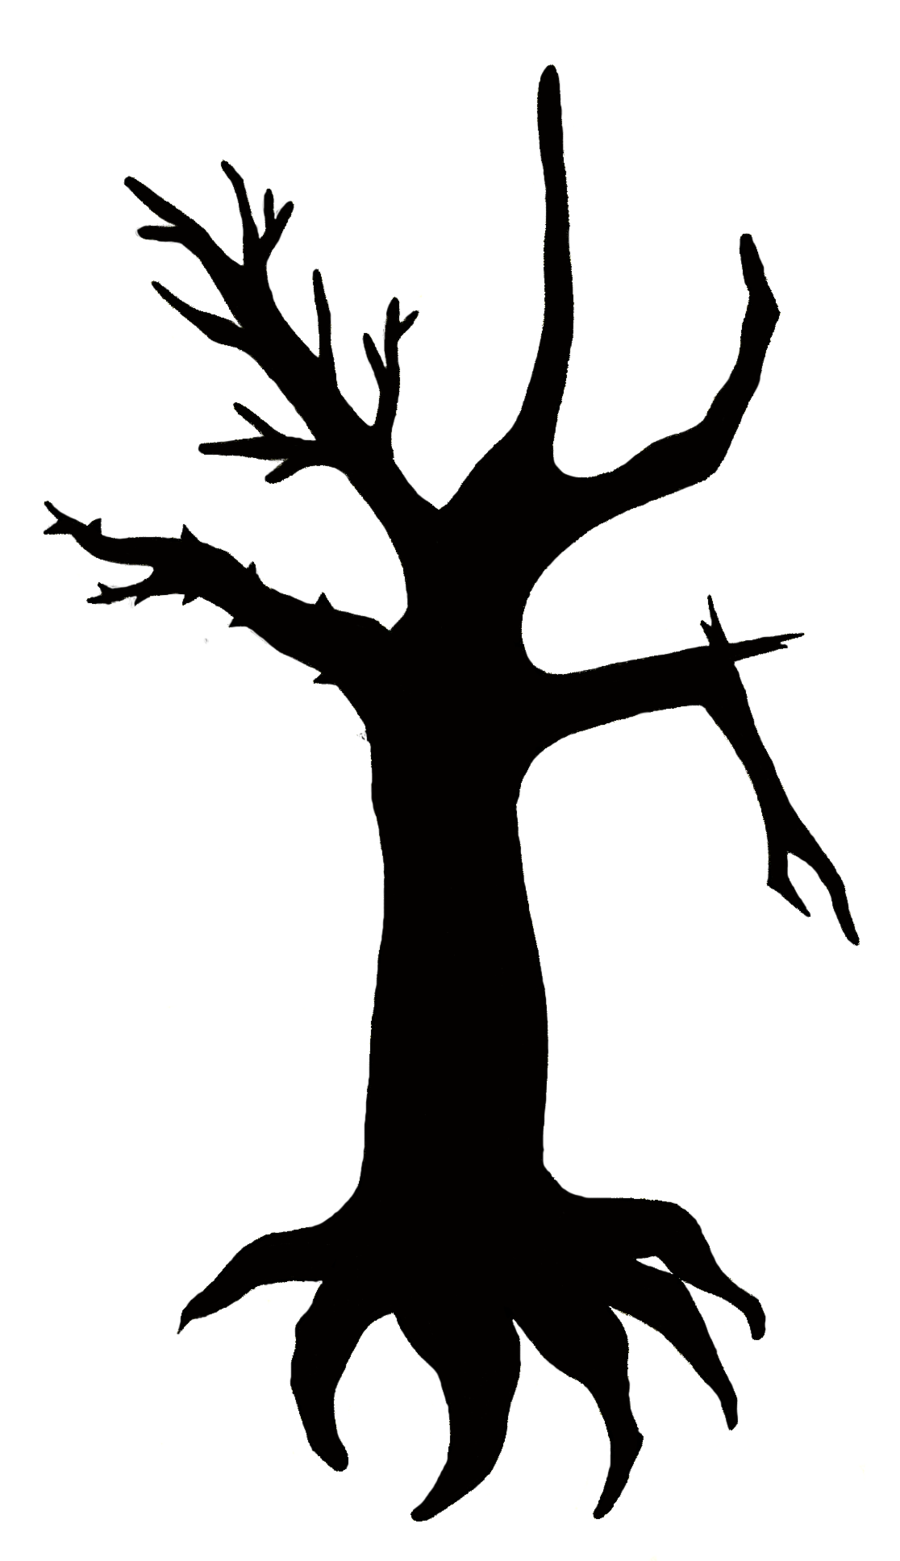 Black and white tree with roots clipart graphic royalty free stock Tree And Roots Silhouette at GetDrawings.com | Free for personal use ... graphic royalty free stock